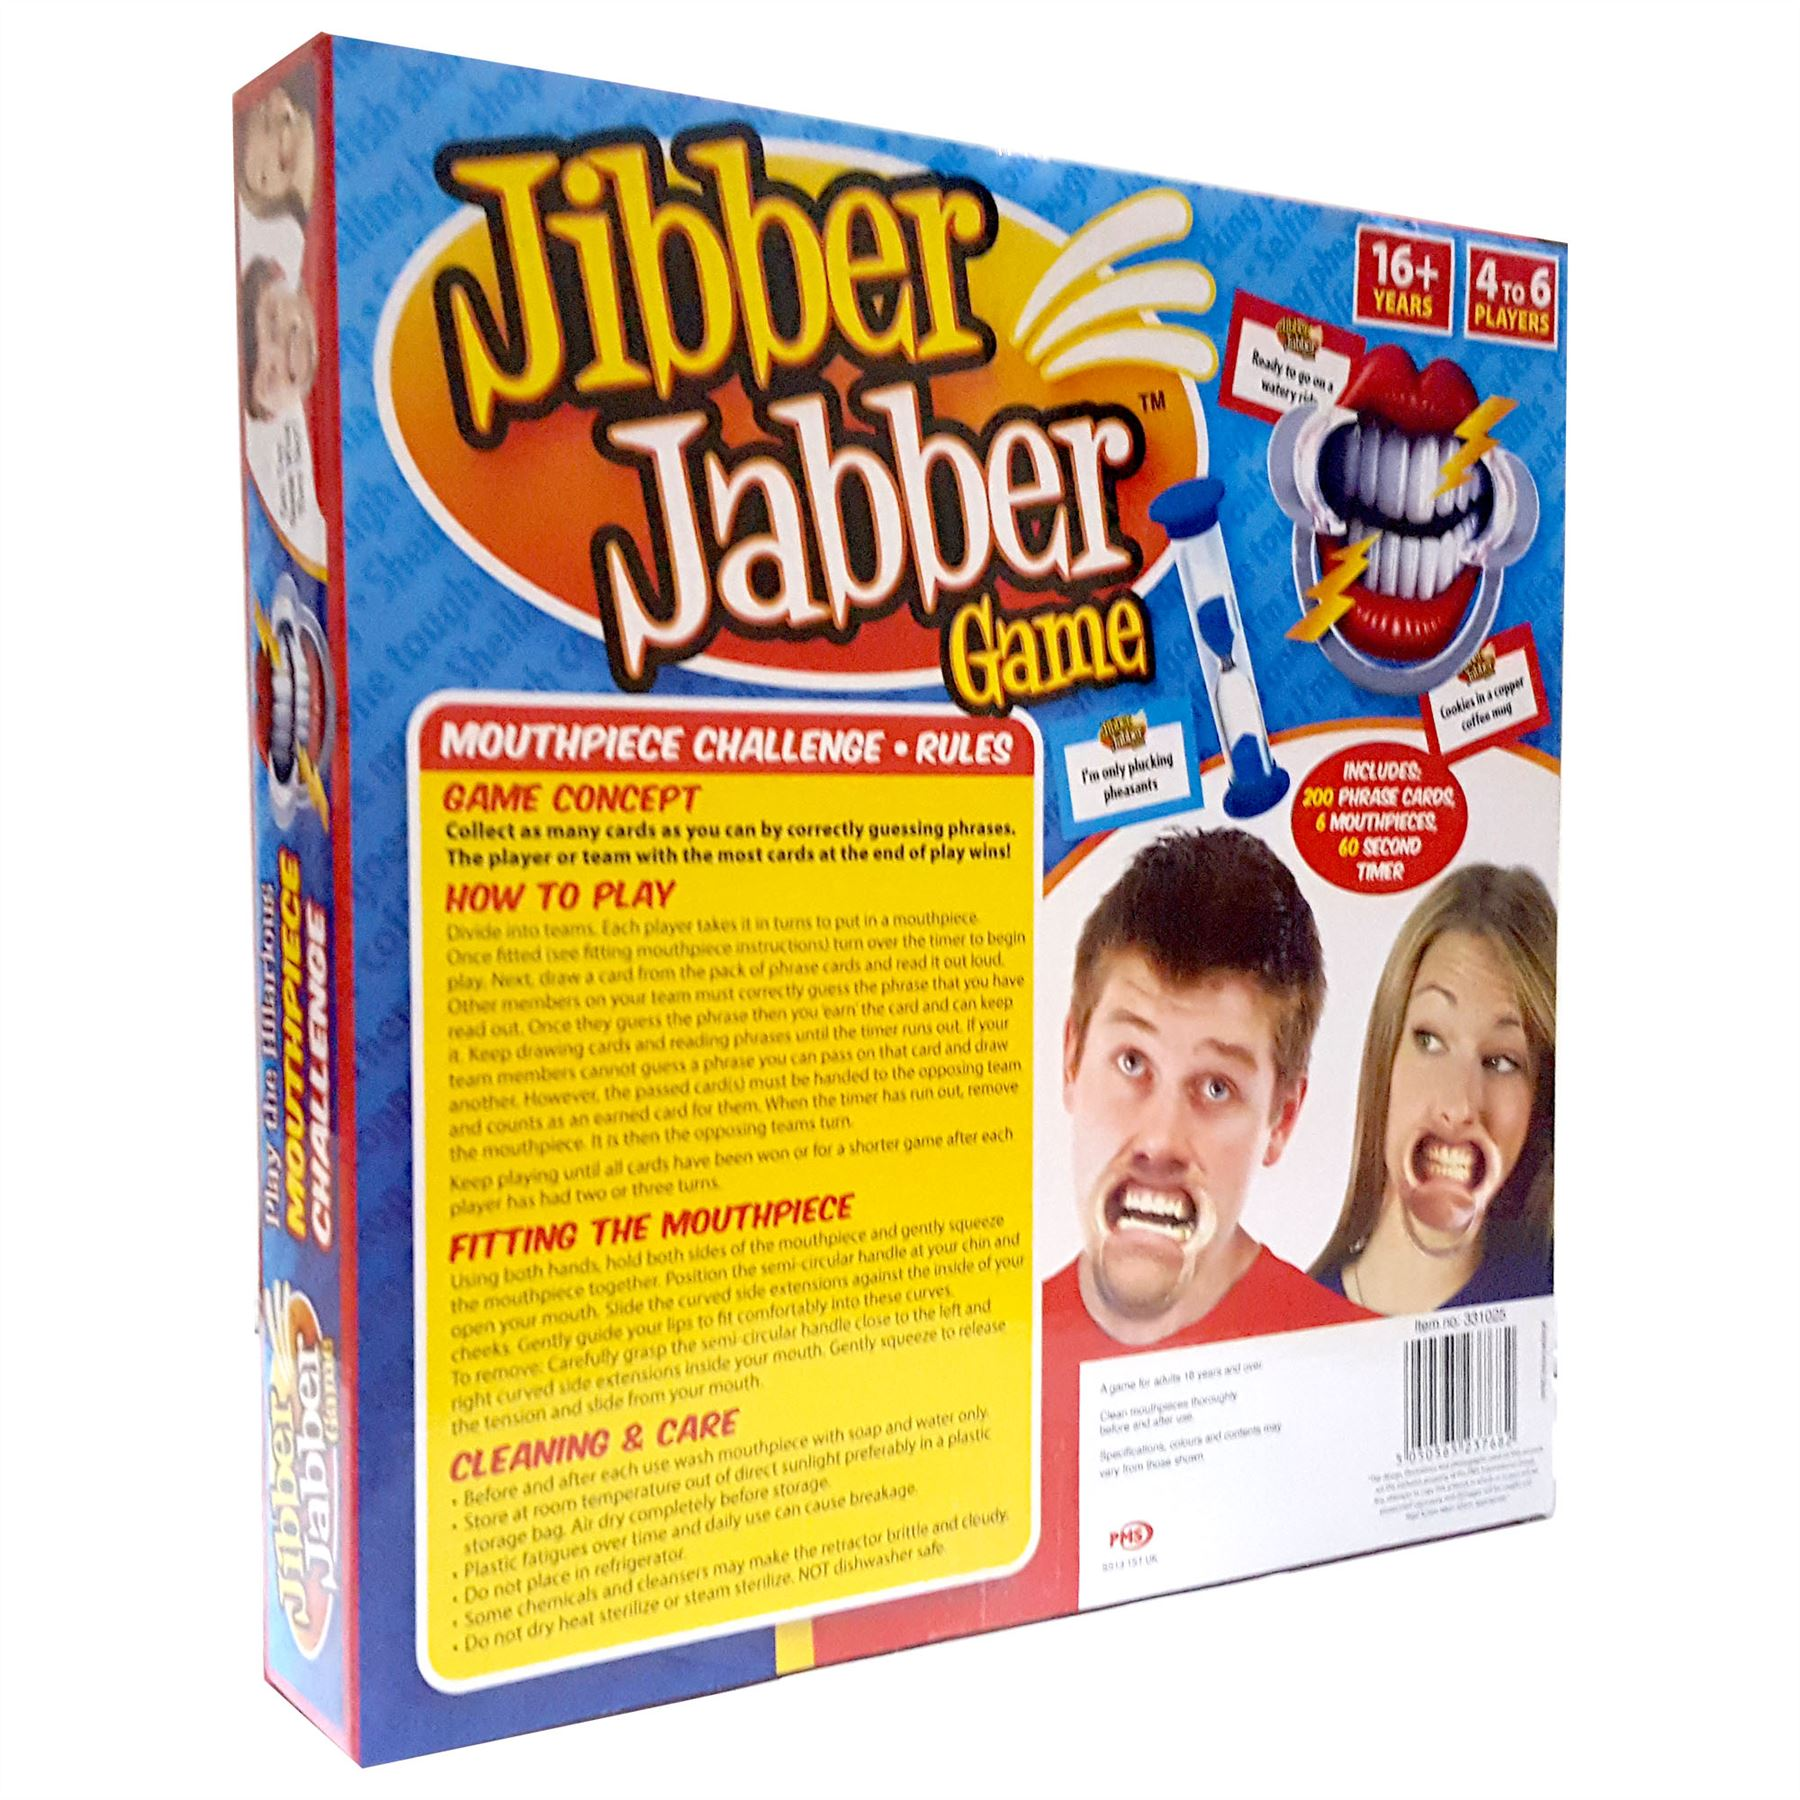 Jibber jabber party game the hilarious mouthpiece challenge board